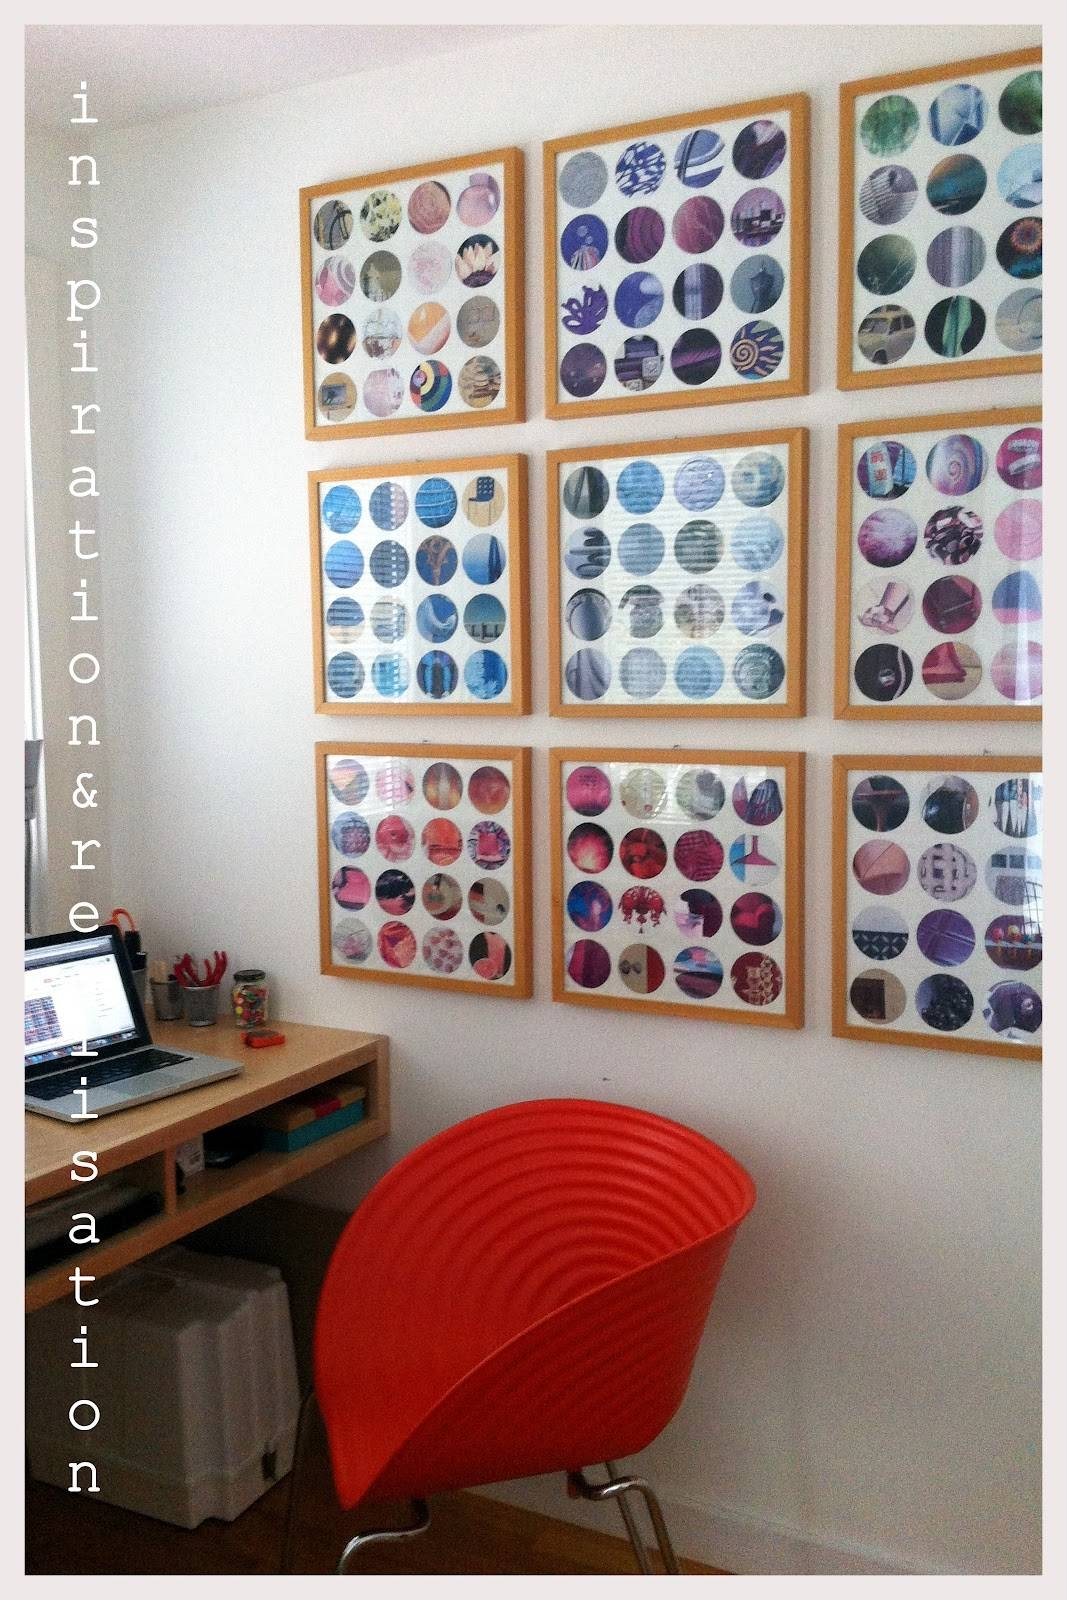 Inspiration And Realisation: Diy Fashion Blog: Diy Recycled Within Most Up To Date Recycled Wall Art (View 9 of 30)